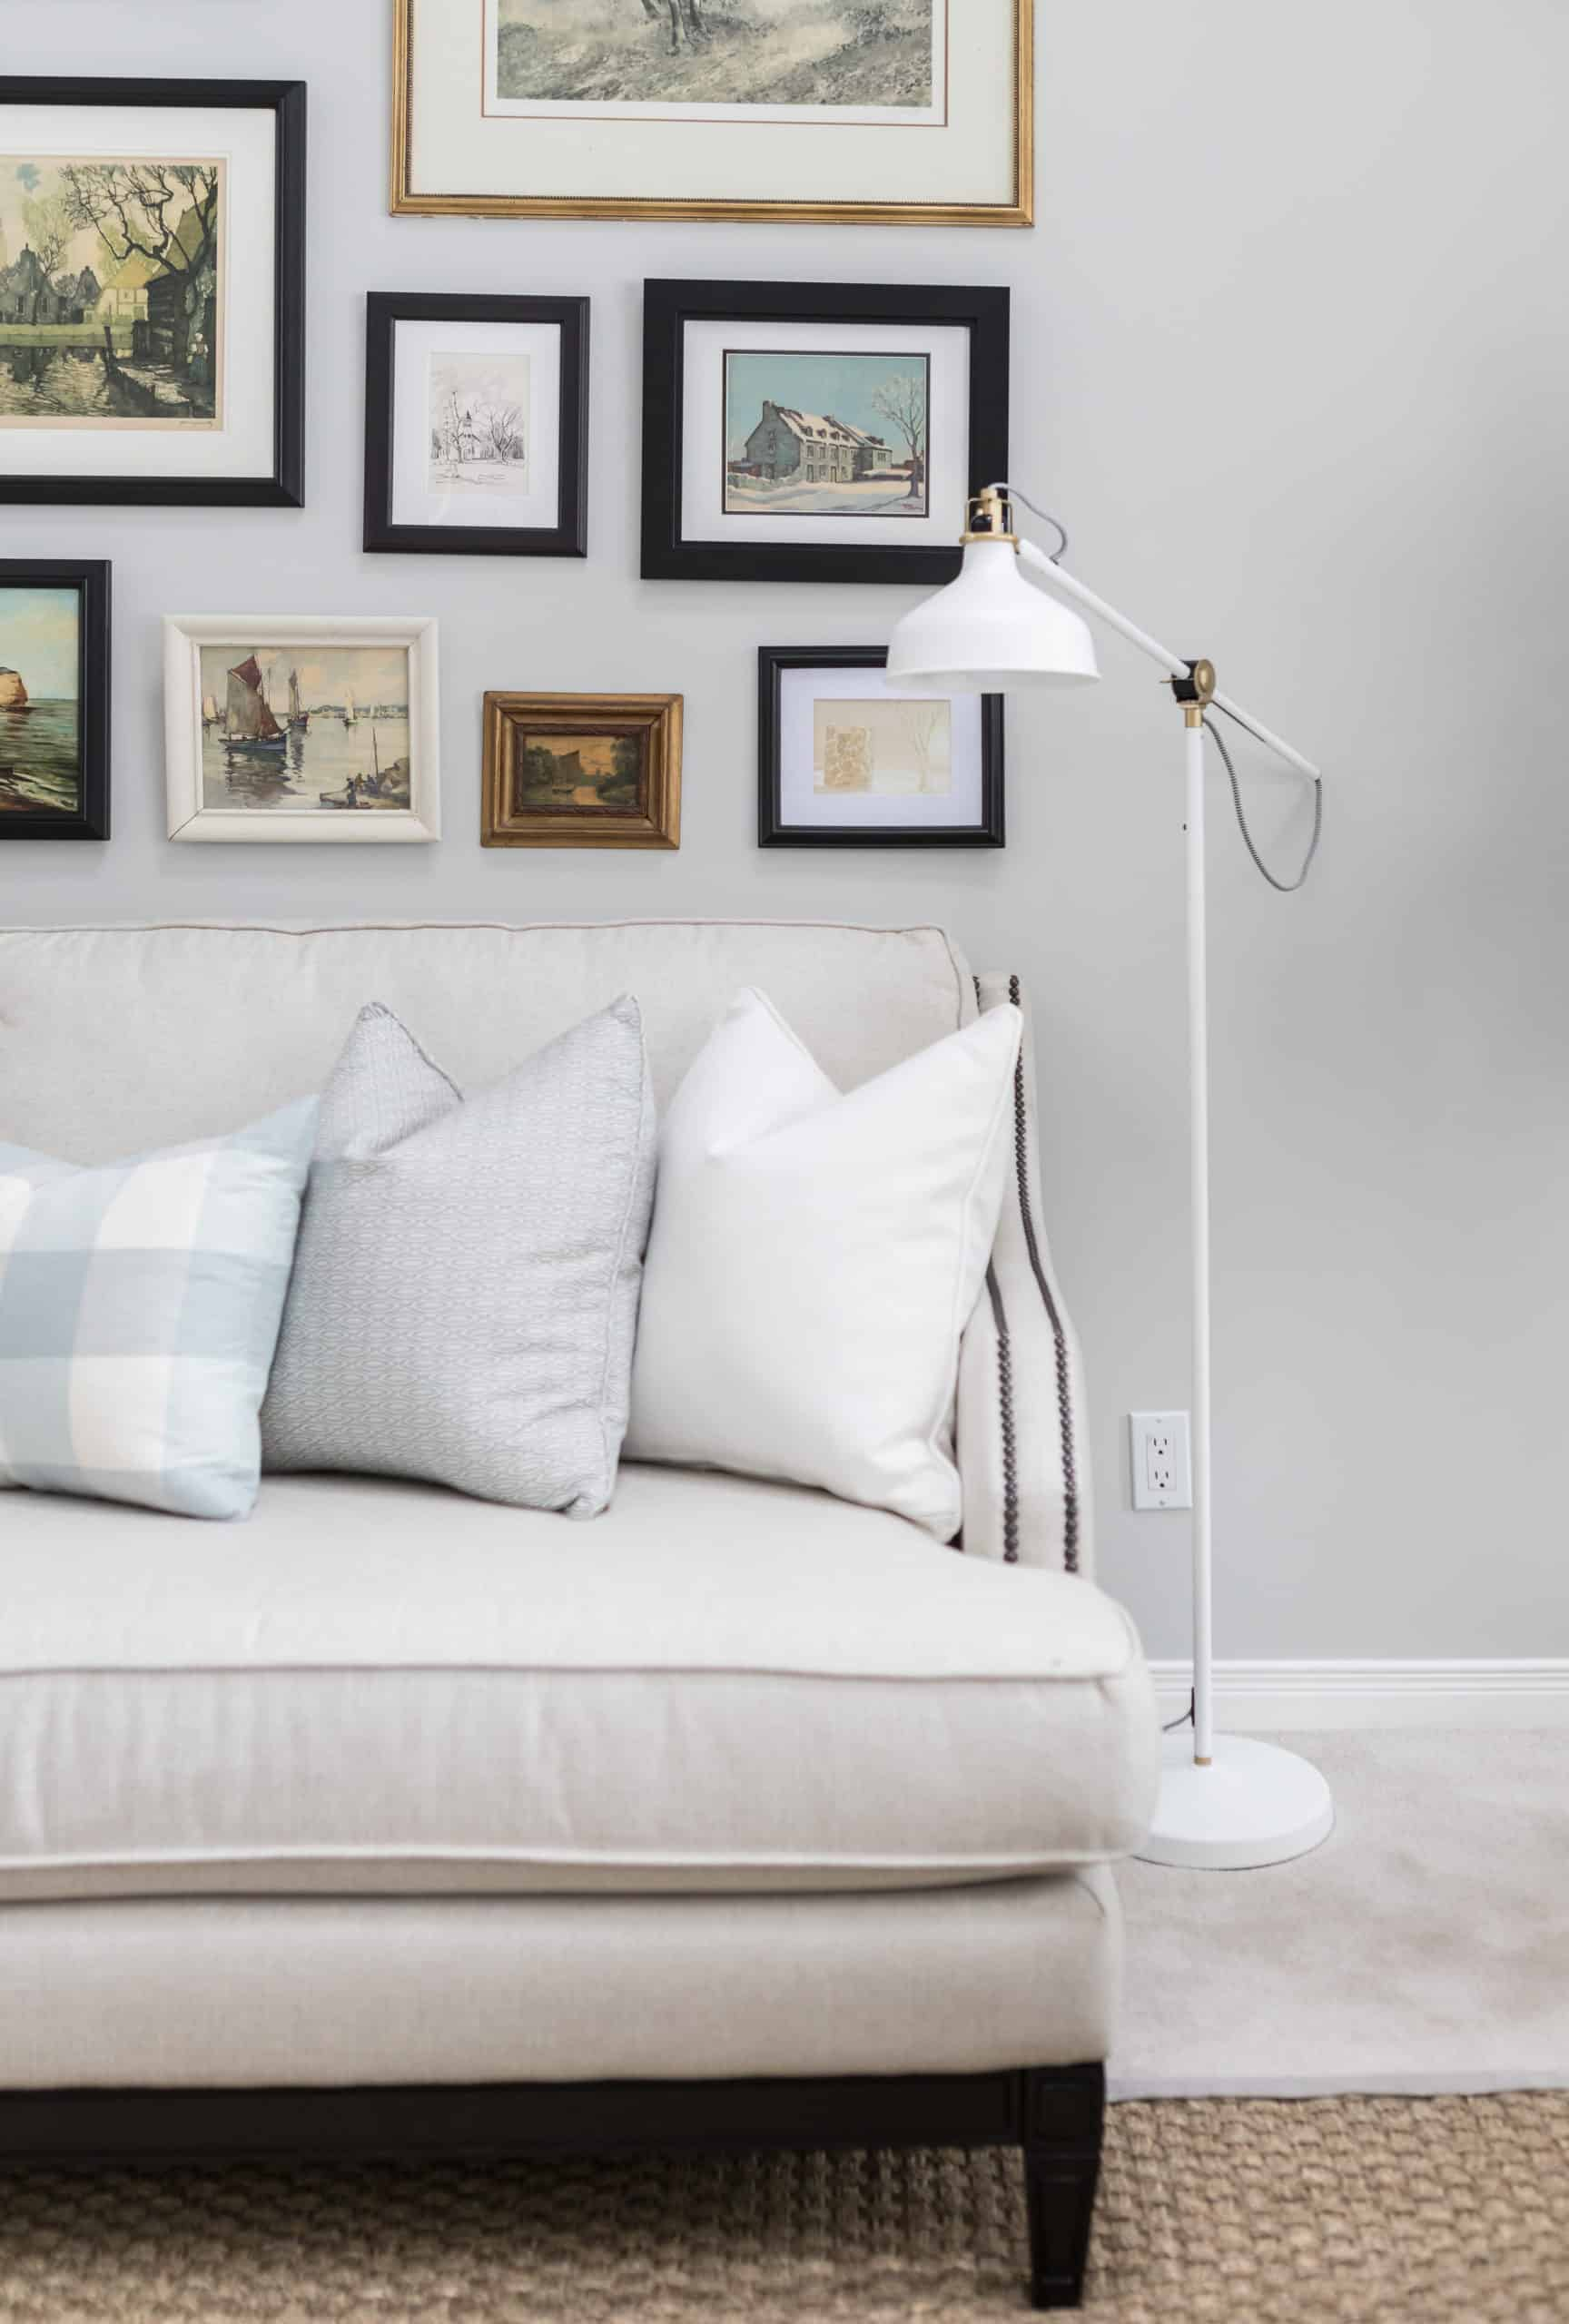 Tall work lamp next to a white couch